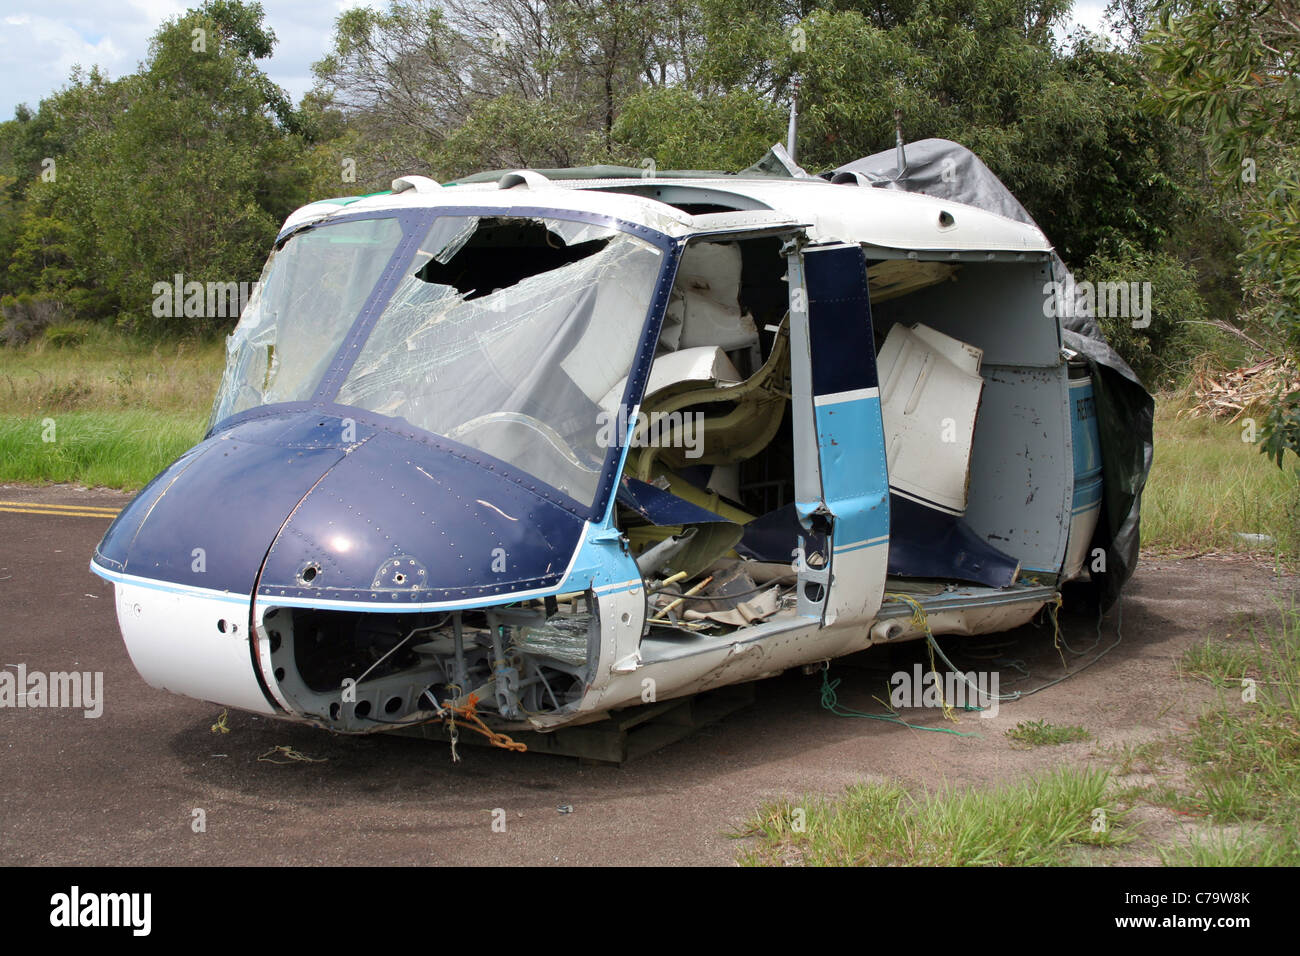 Wrecked Helicopter Stock Photos & Wrecked Helicopter Stock